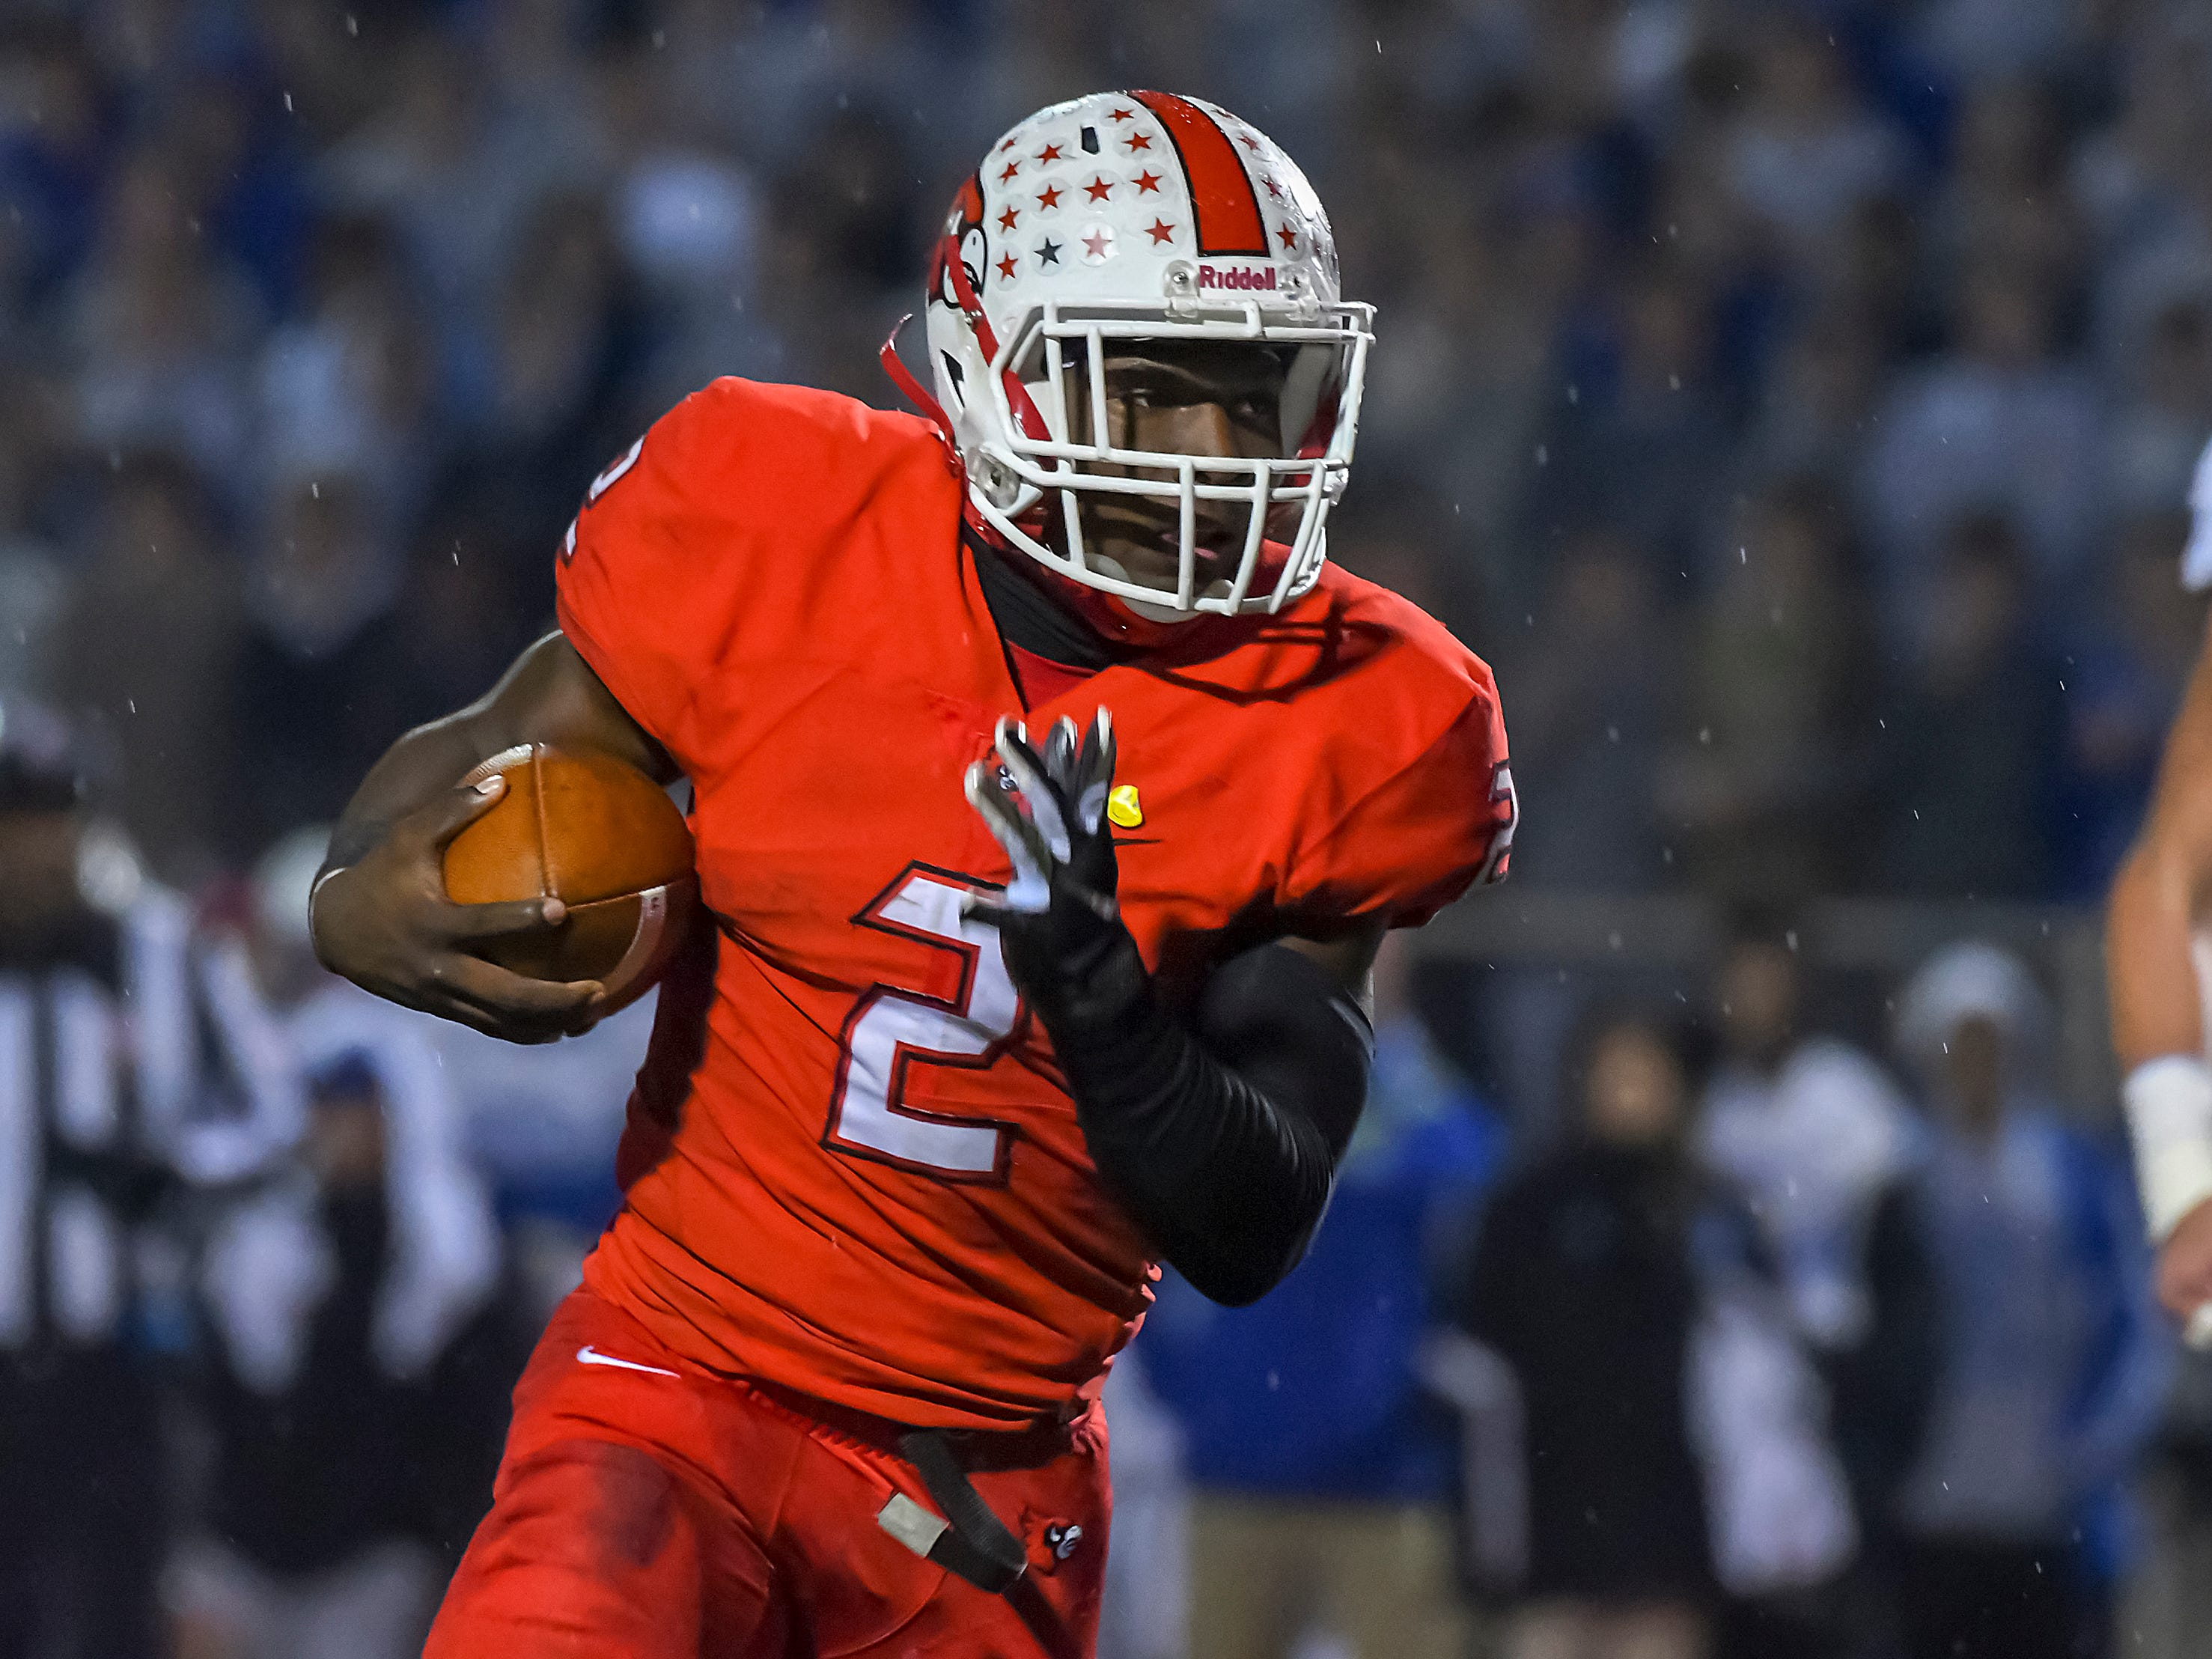 Deante Smith-Moore of Colerain runs the football against St. X in the OHSAA DI Region 4 Playoffs at Colerain High School,  Friday Nov. 2, 2018